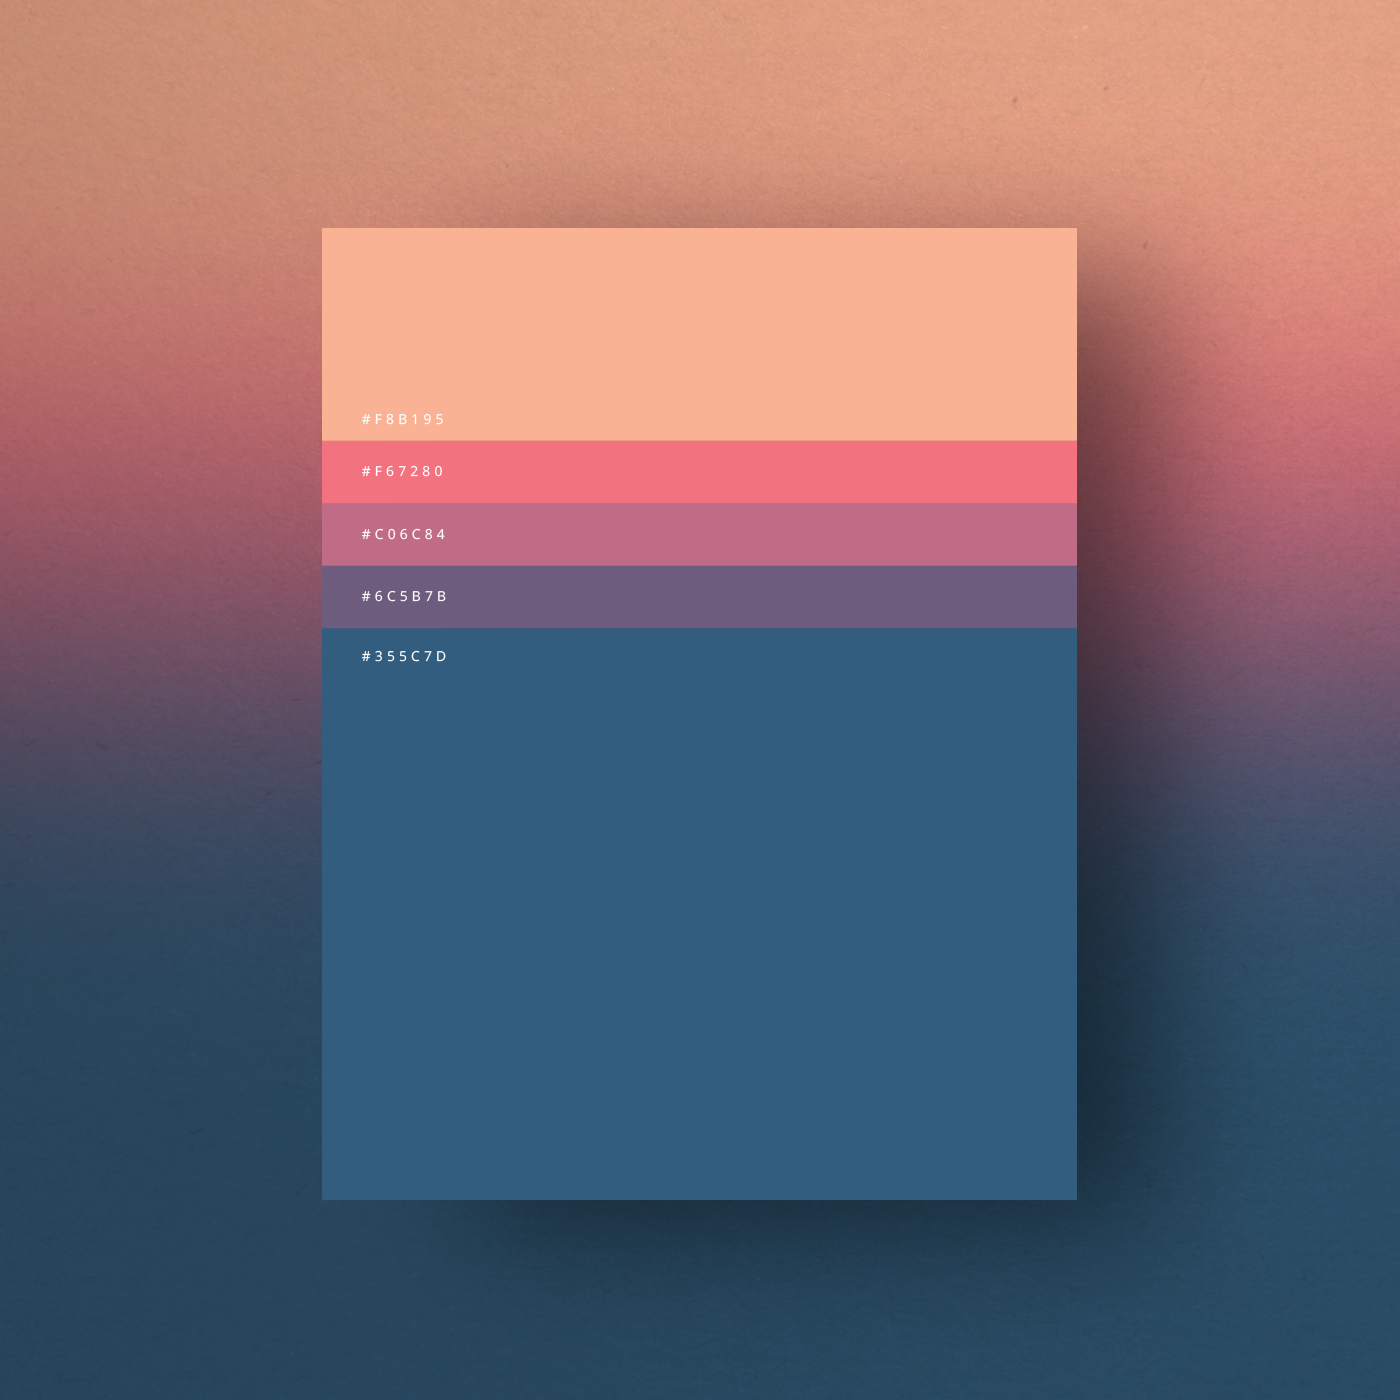 Game boy color palette gimp - Minimalist Color Palette Posters Collection When You Think Of Minimal The First Thing That Comes To Your Mind Is Less The Following Posters Are N